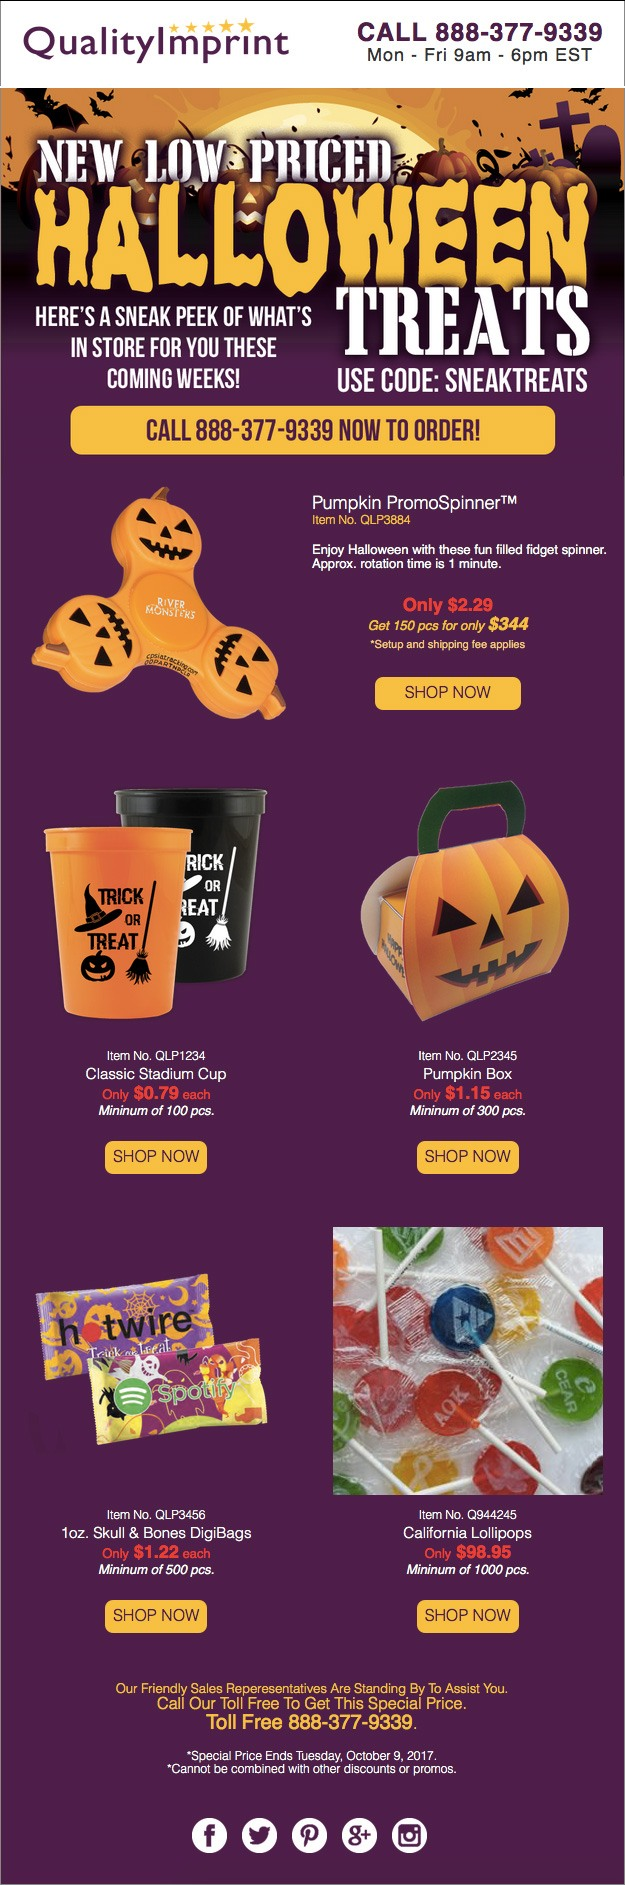 Halloween 2017 - New Low Priced Halloween Treats!